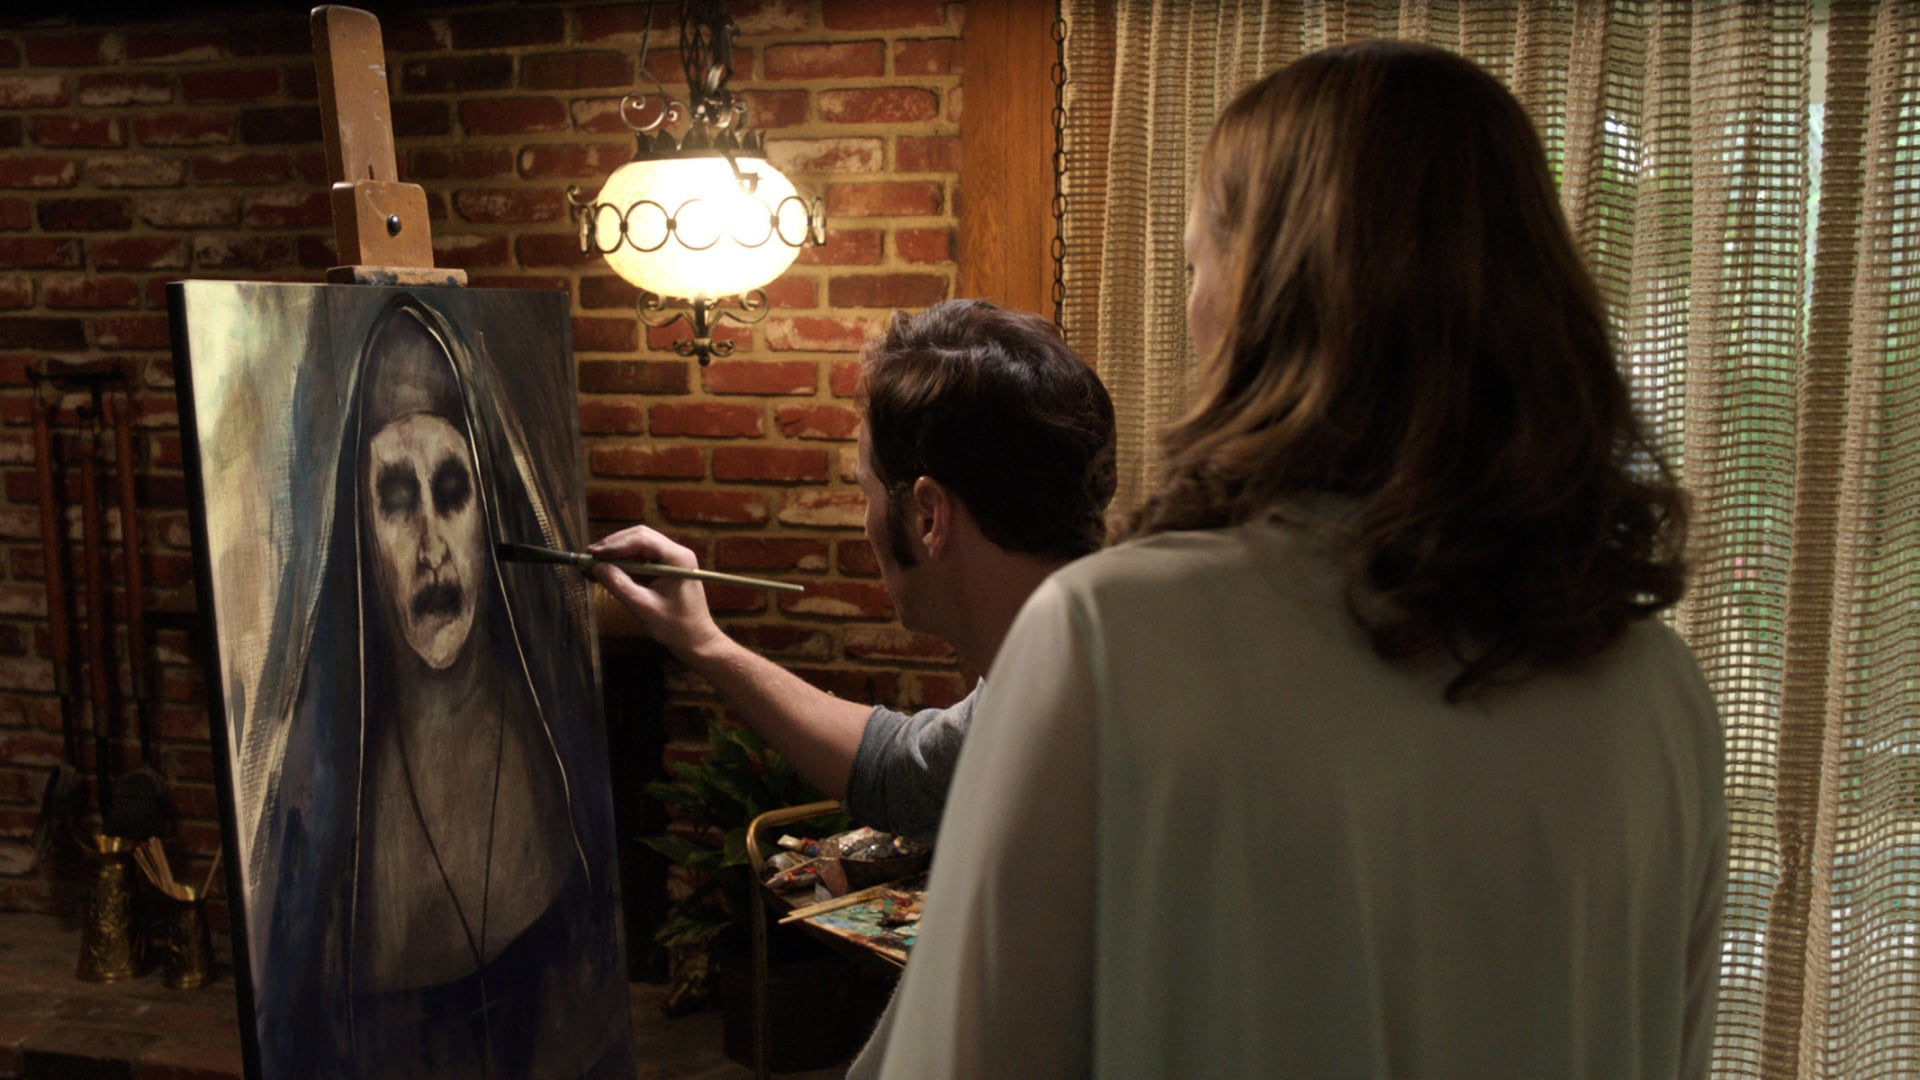 The Conjuring 2 backdrop